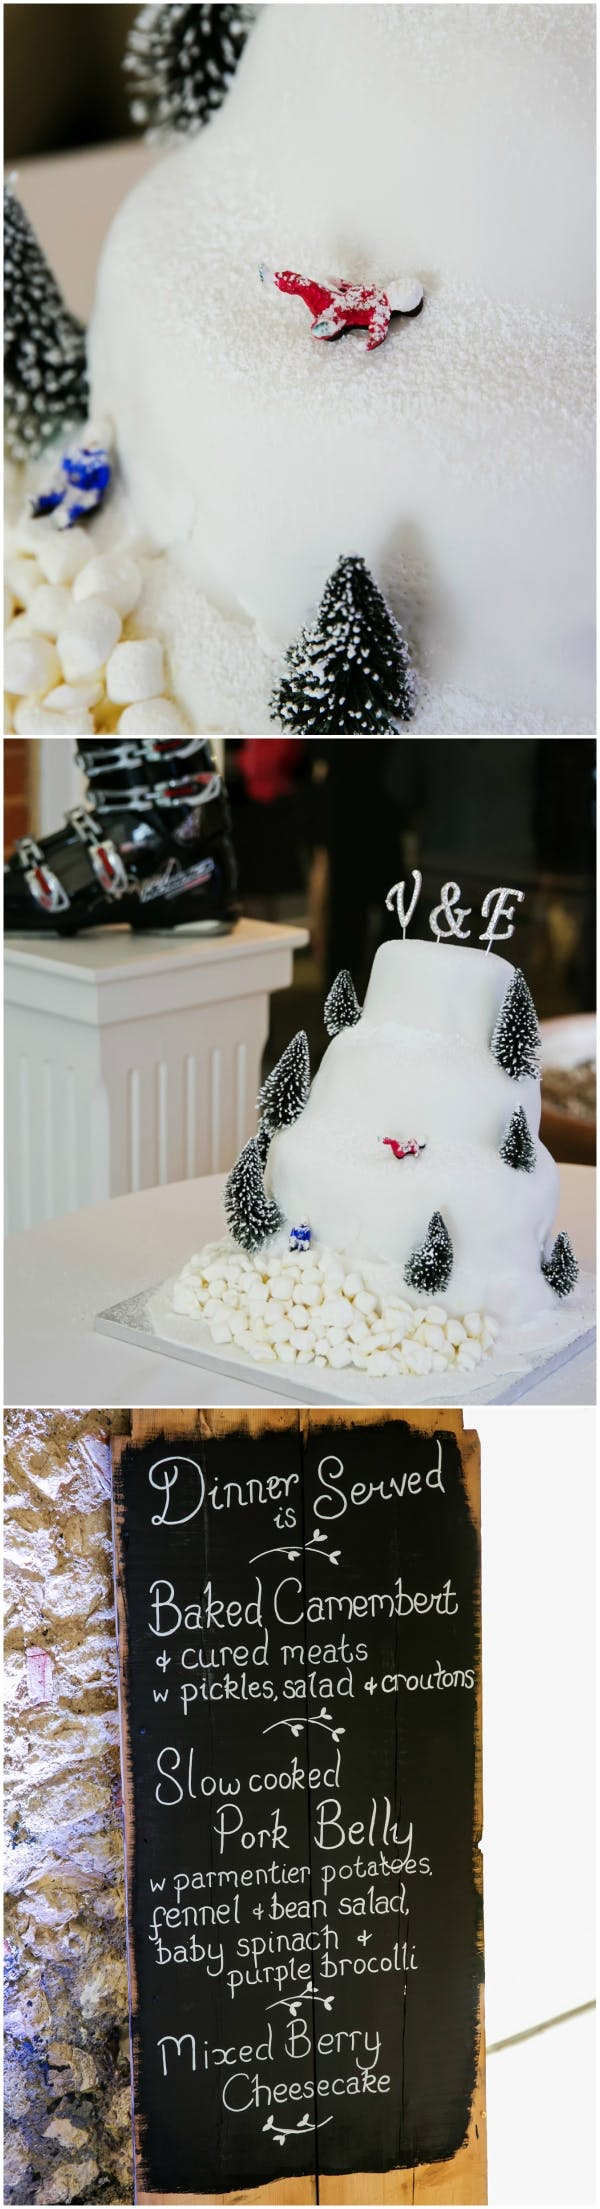 Ski And Winter Inspired Wedding Cake And Chalk Board Food Menu | Conffeti.co.uk